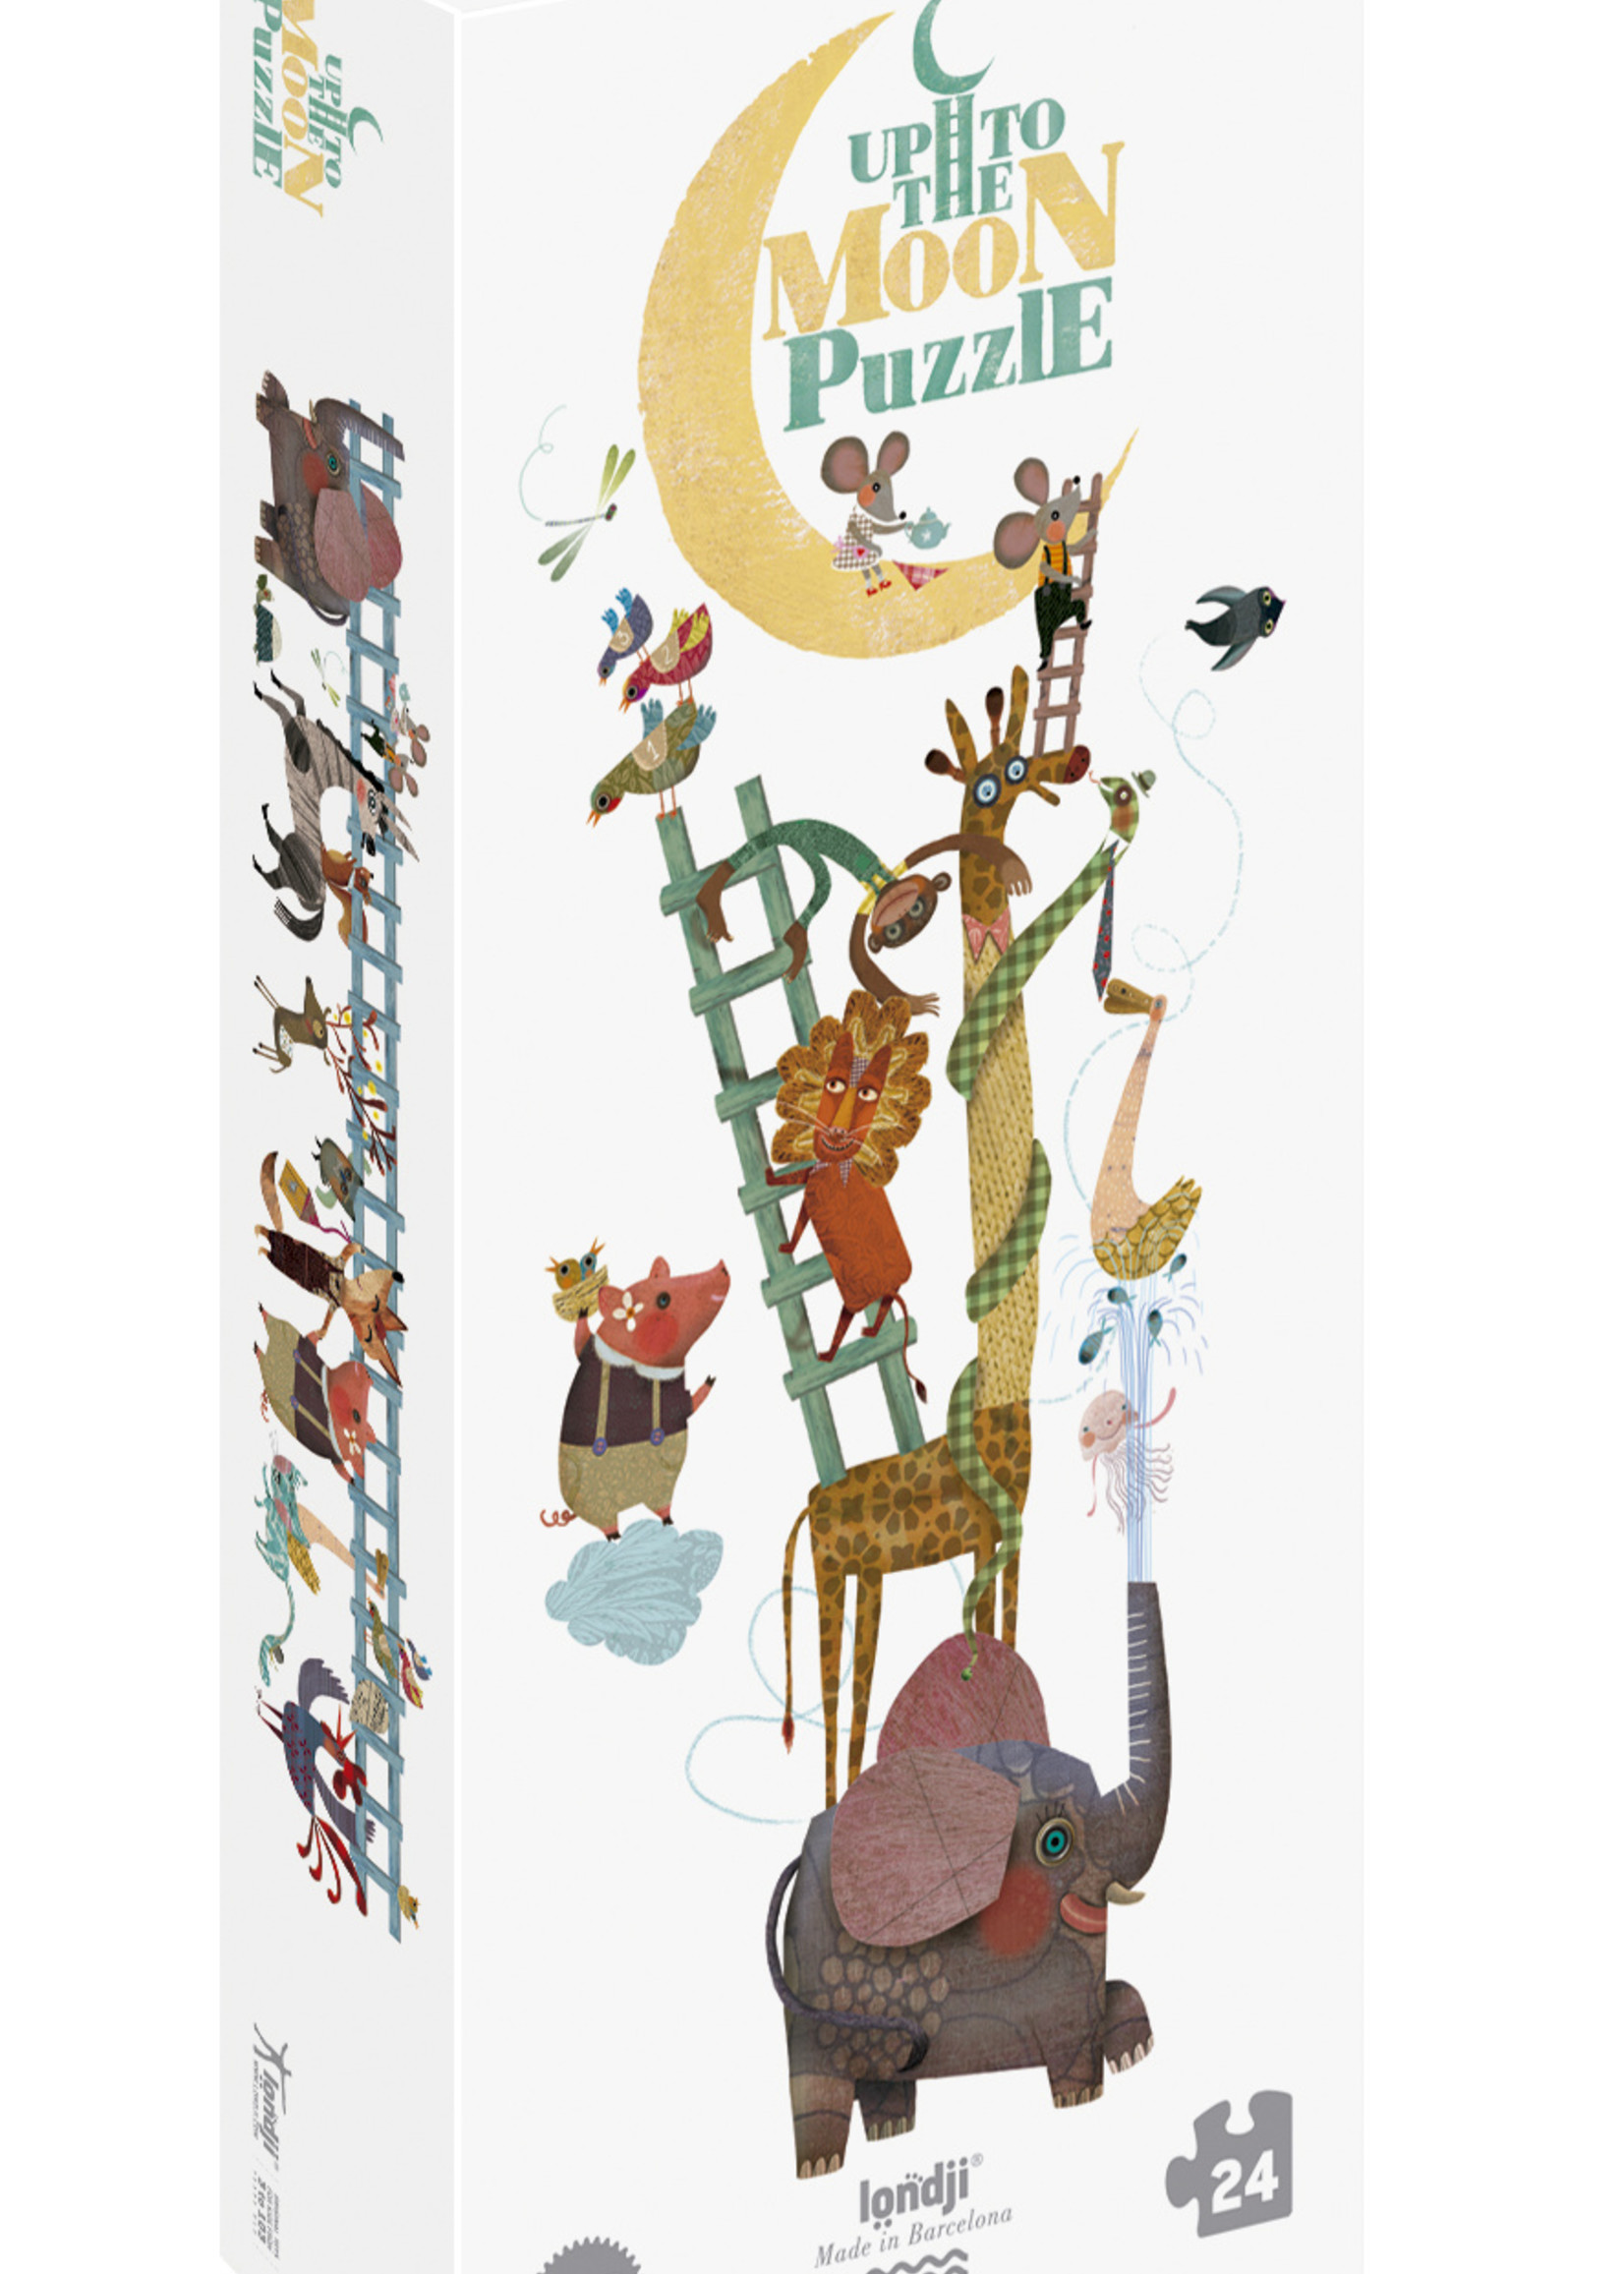 Londji Puzzel - Up To The Moon